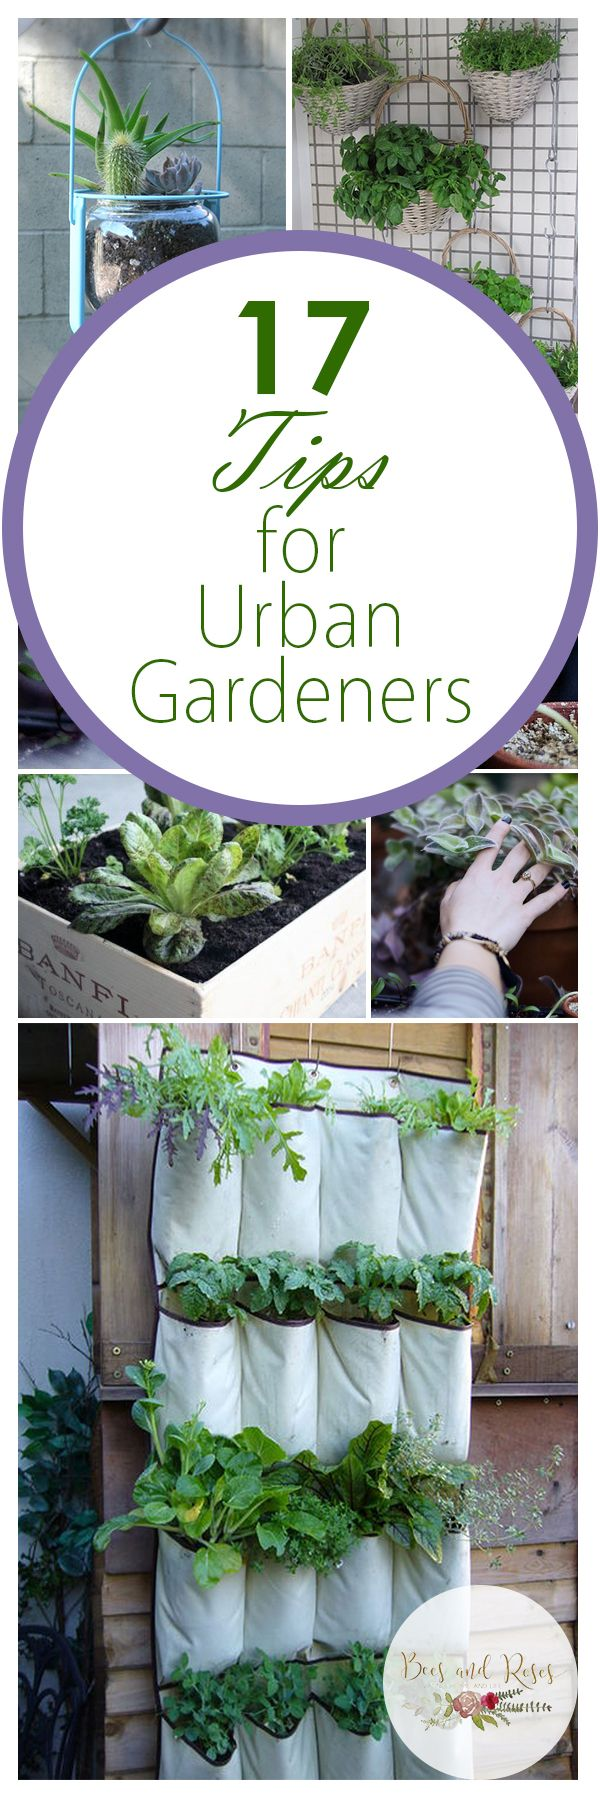 Urban Gardening, BEES AND ROSES, A great website!